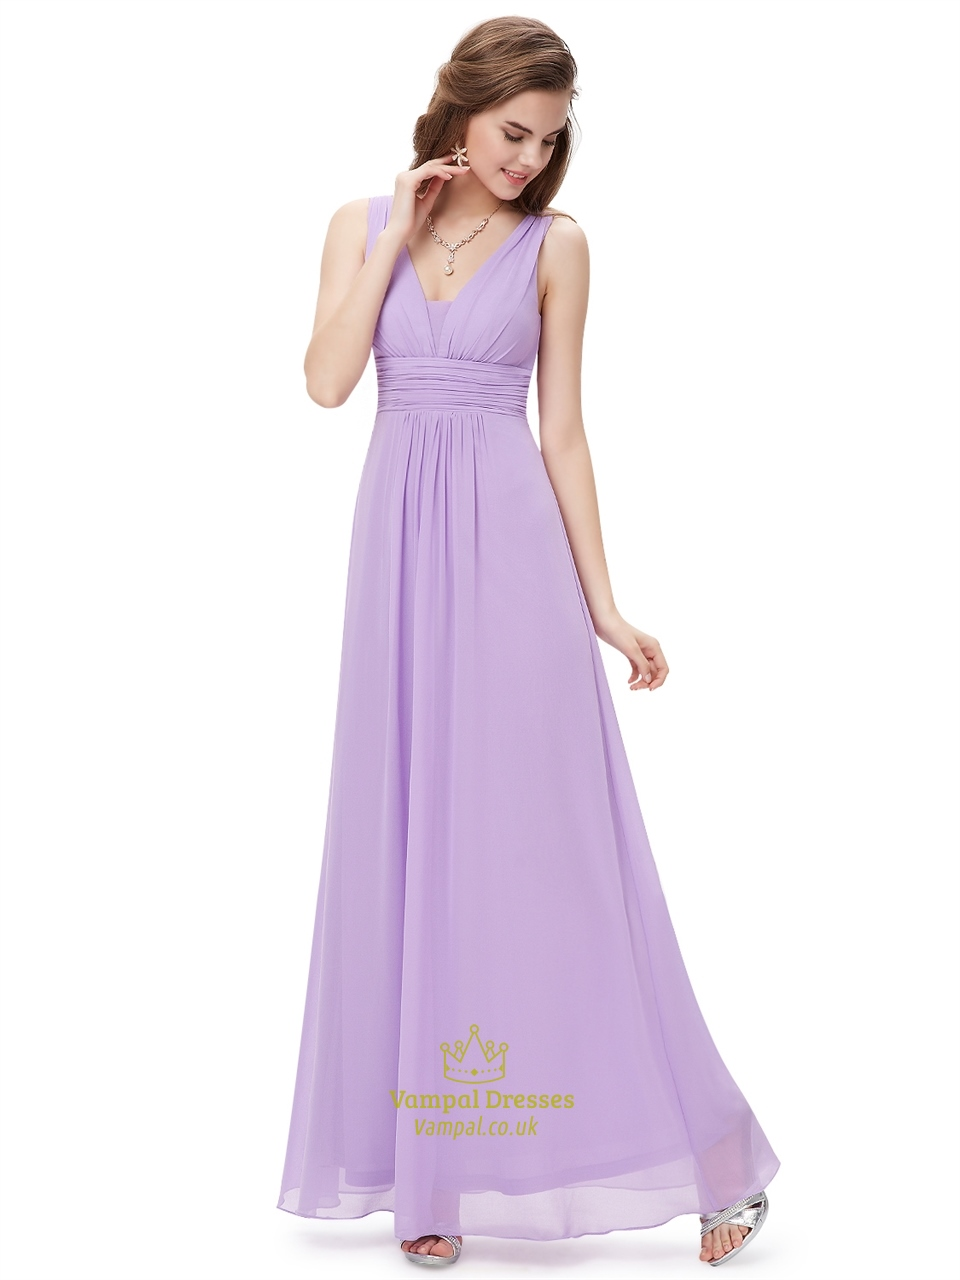 Lilac v neck sleeveless chiffon bridesmaid dresses for spring lilac v neck sleeveless chiffon bridesmaid dresses for spring wedding ombrellifo Images